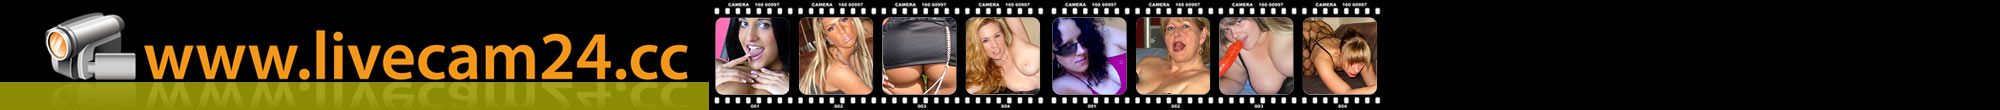 AmandaErotixx, 32 Jahre, BH: 80 C - gratis sex chat -  - Video Web Cams Live Sex Chat von heissen Girls